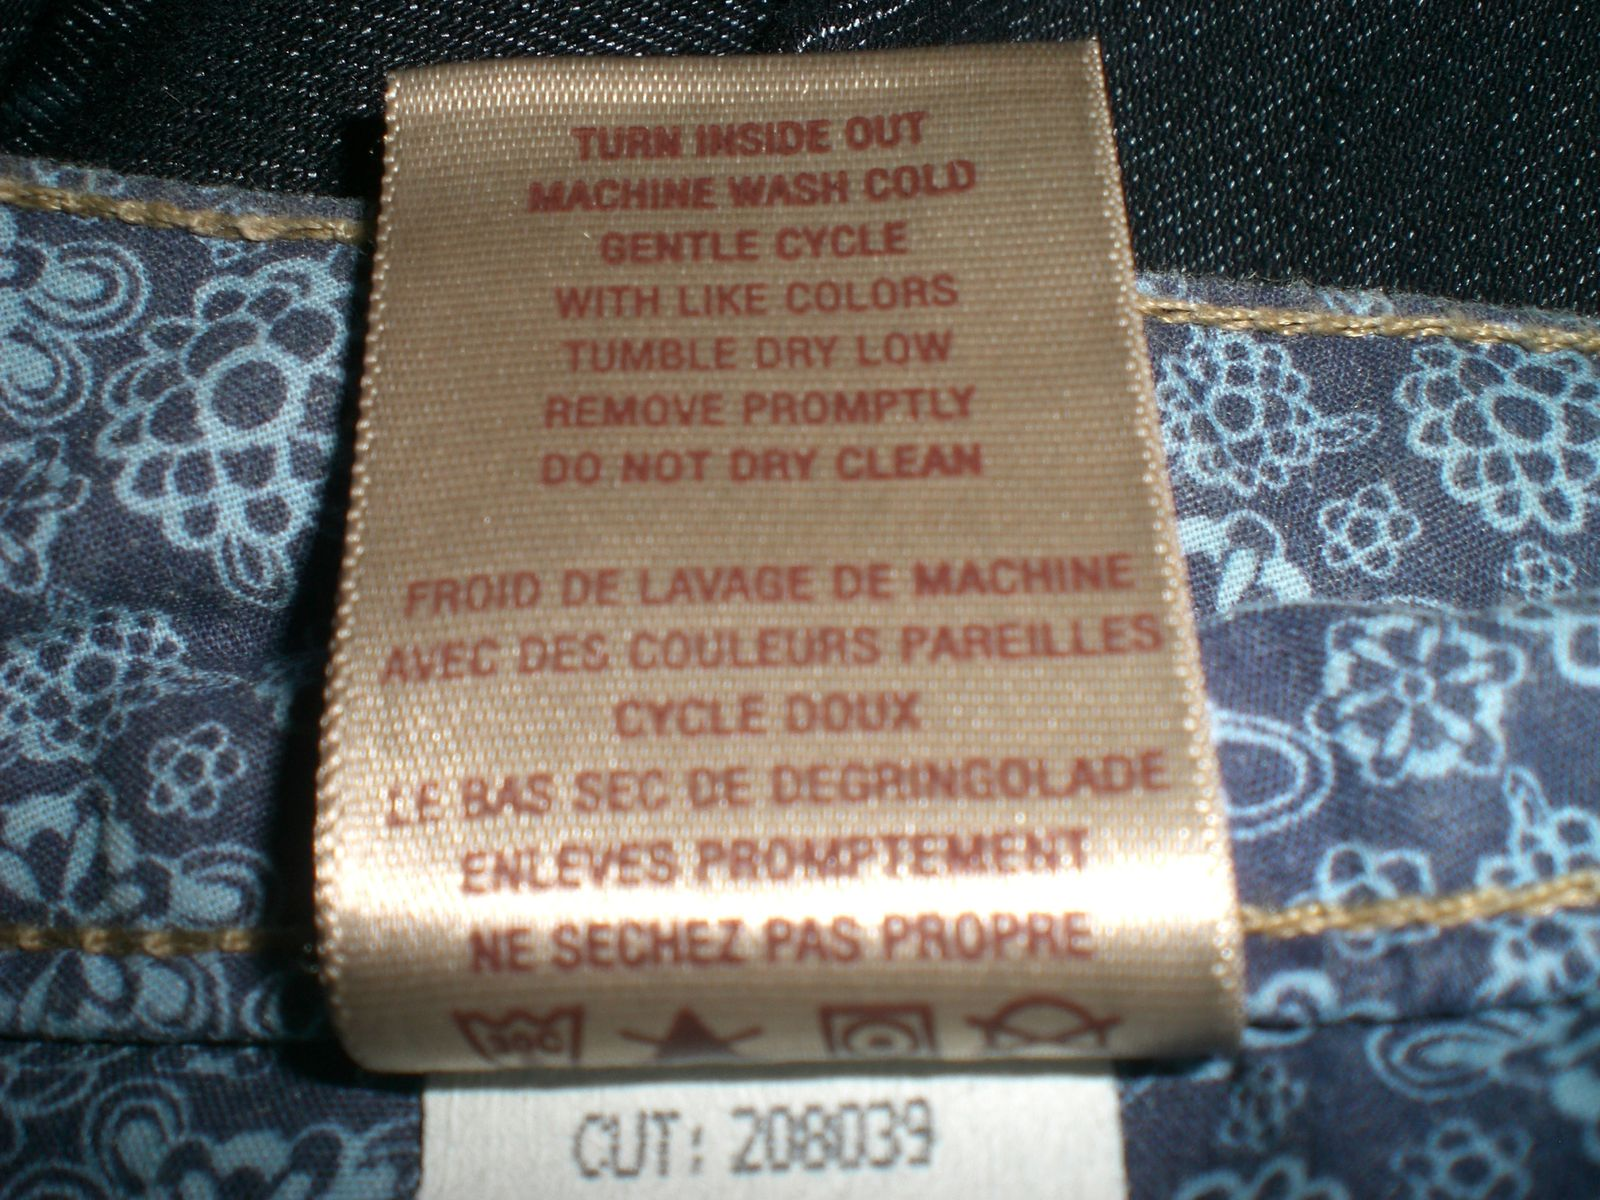 La meilleure traduction francaise des instructions de lavage sur une etiquette de jeans. Enjoy !